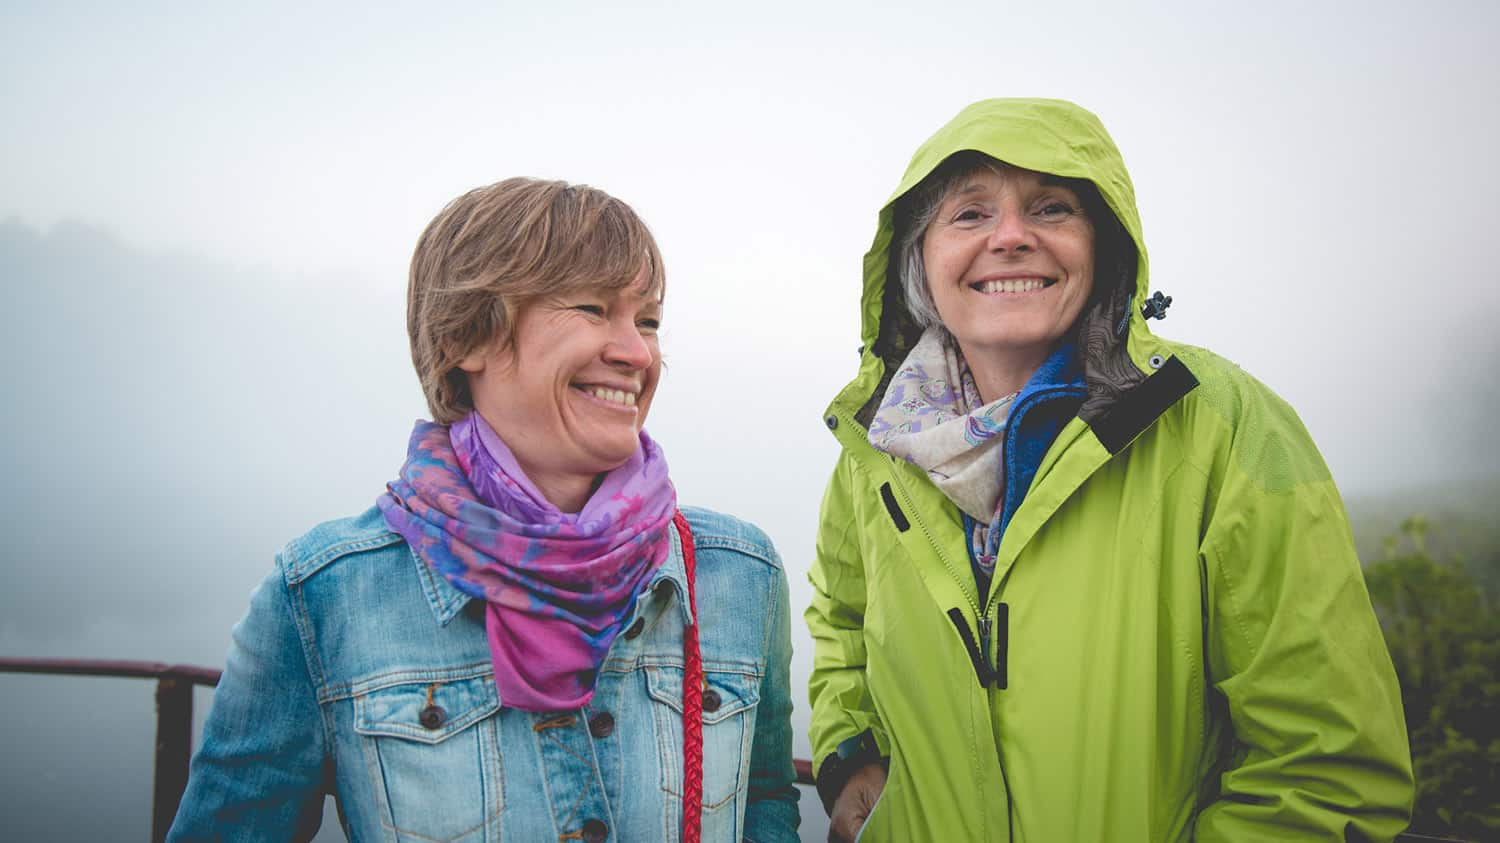 The Importance Of Choosing Good Friends After 60